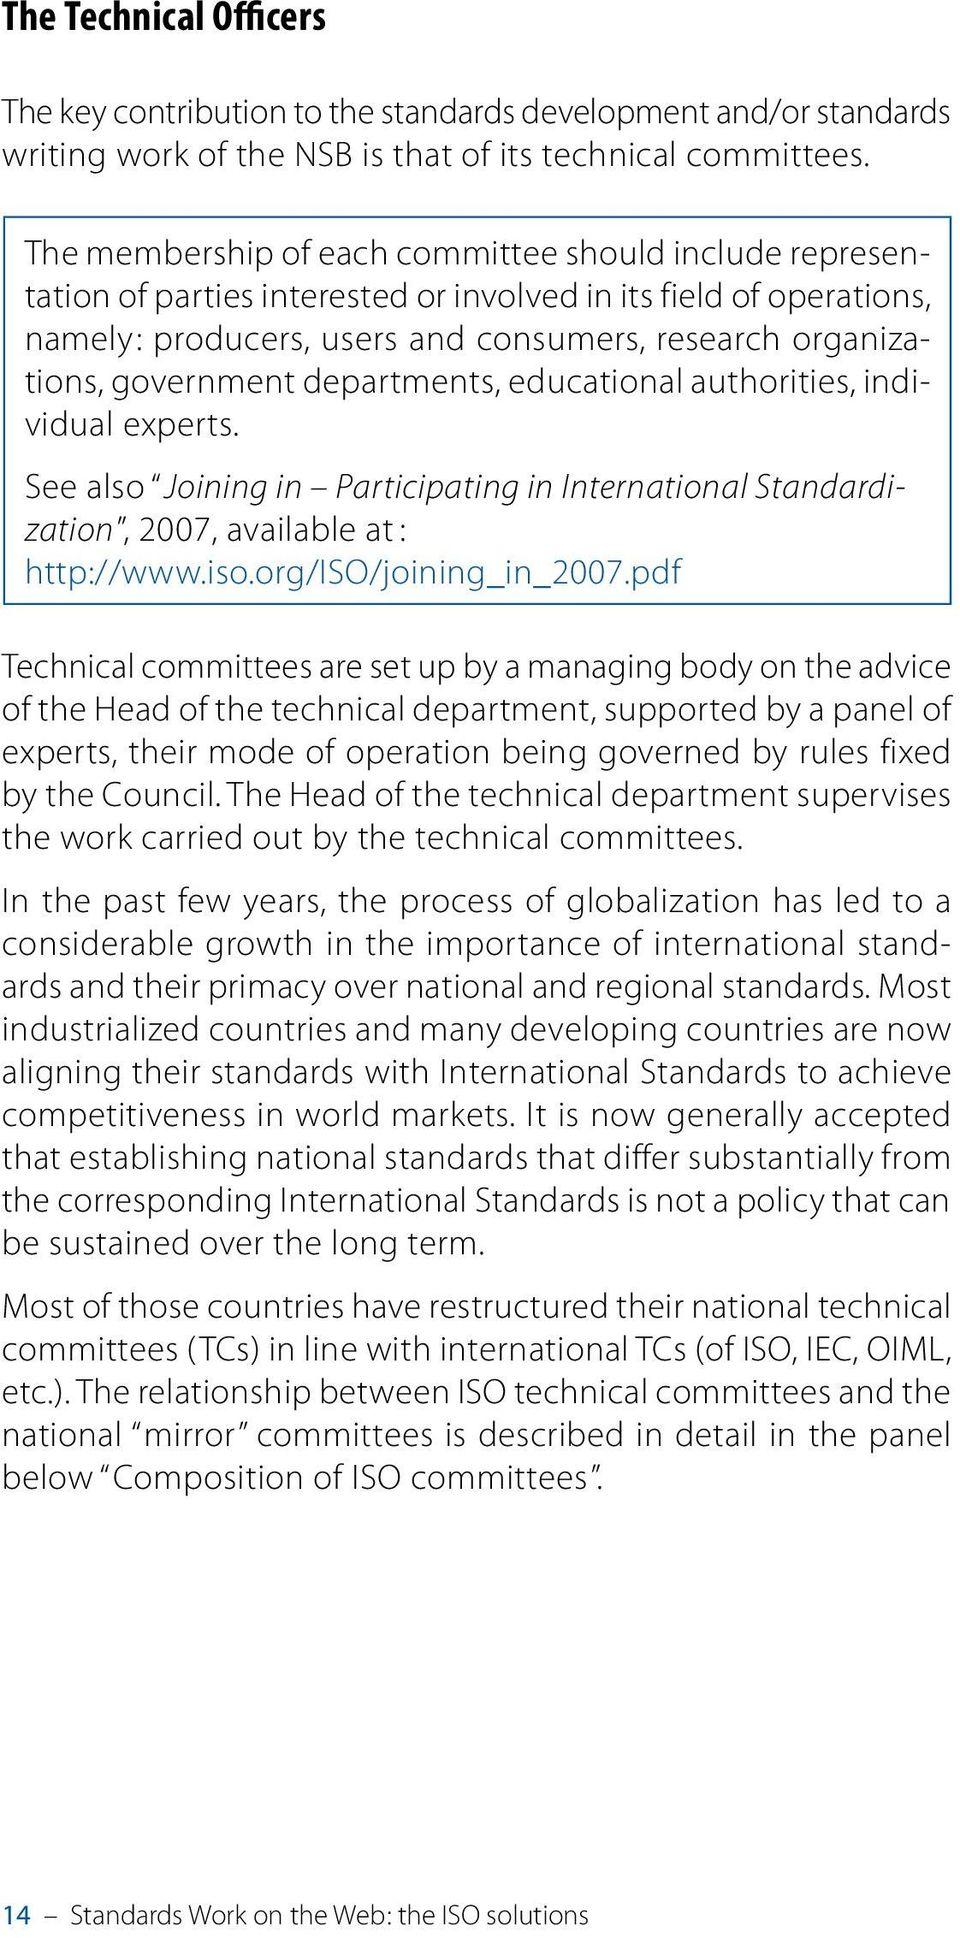 government departments, educational authorities, individual experts. See also Joining in Participating in International Standardization, 2007, available at : http://www.iso.org/iso/joining_in_2007.